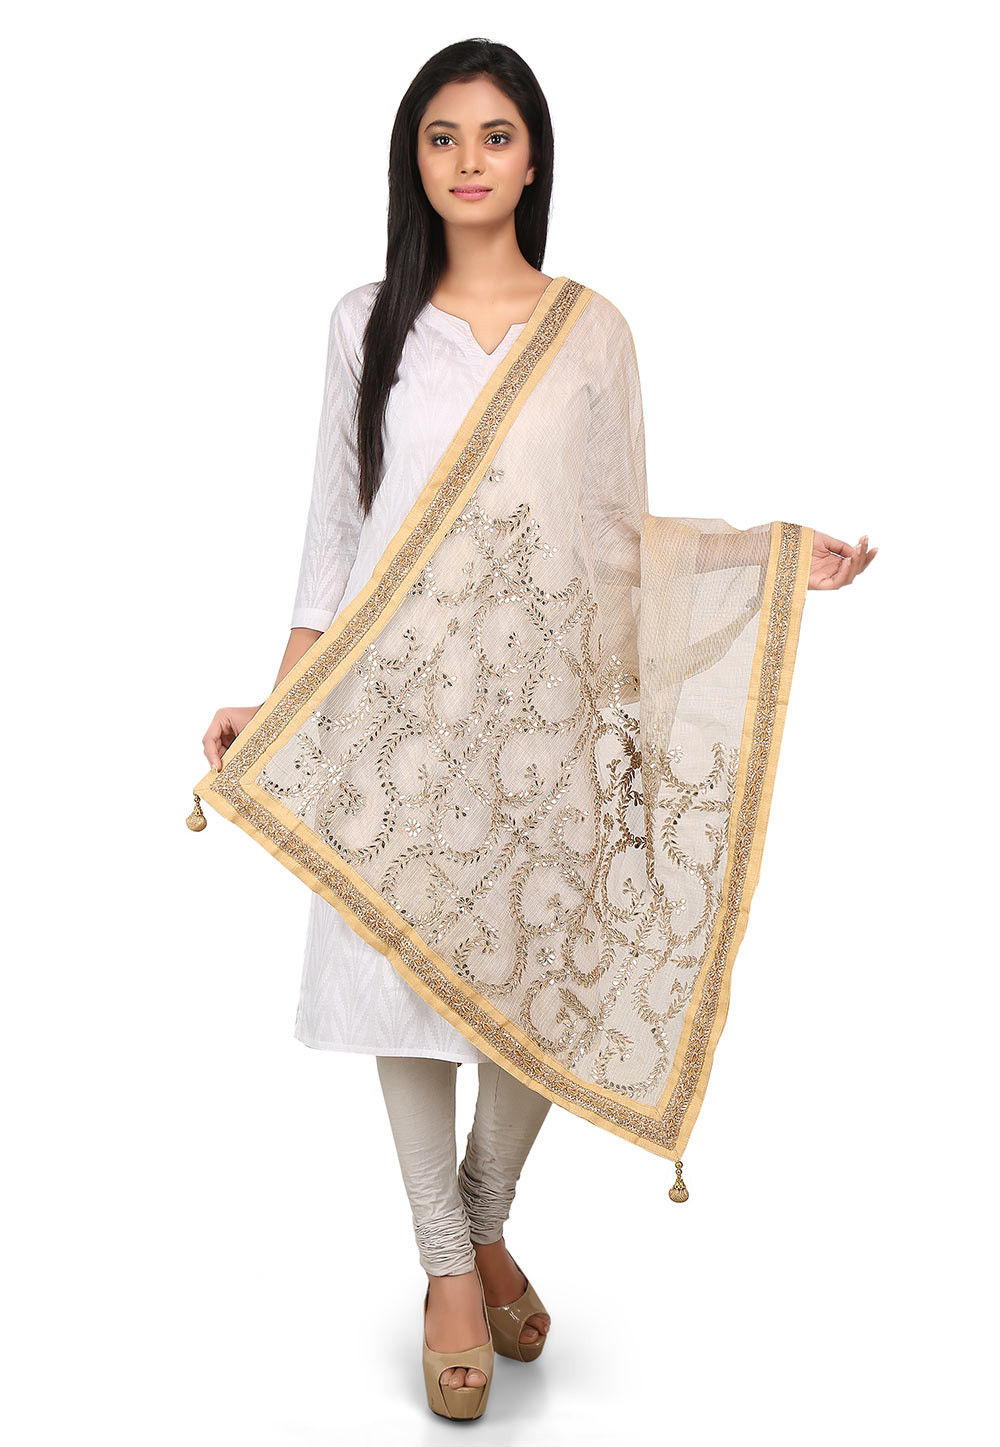 Embroidered Pure Kota Tissue Dupatta in Beige